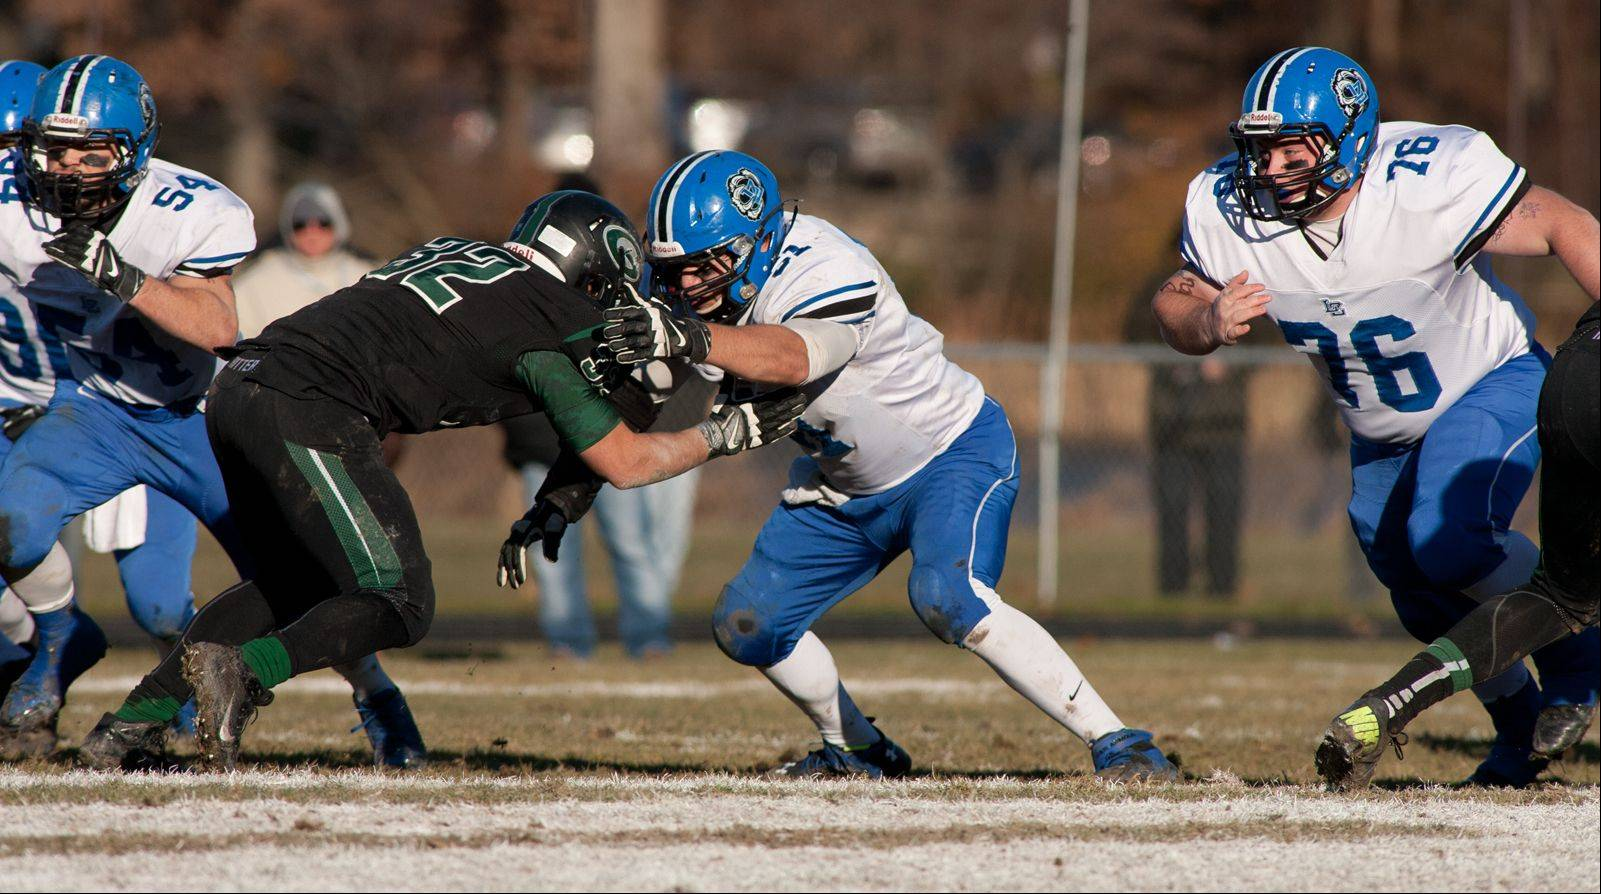 Playoffs -Semifinal- Photos from the Lake Zurich at Glenbard West 7A playoff football game in Glen Ellyn on Saturday, Nov. 23.